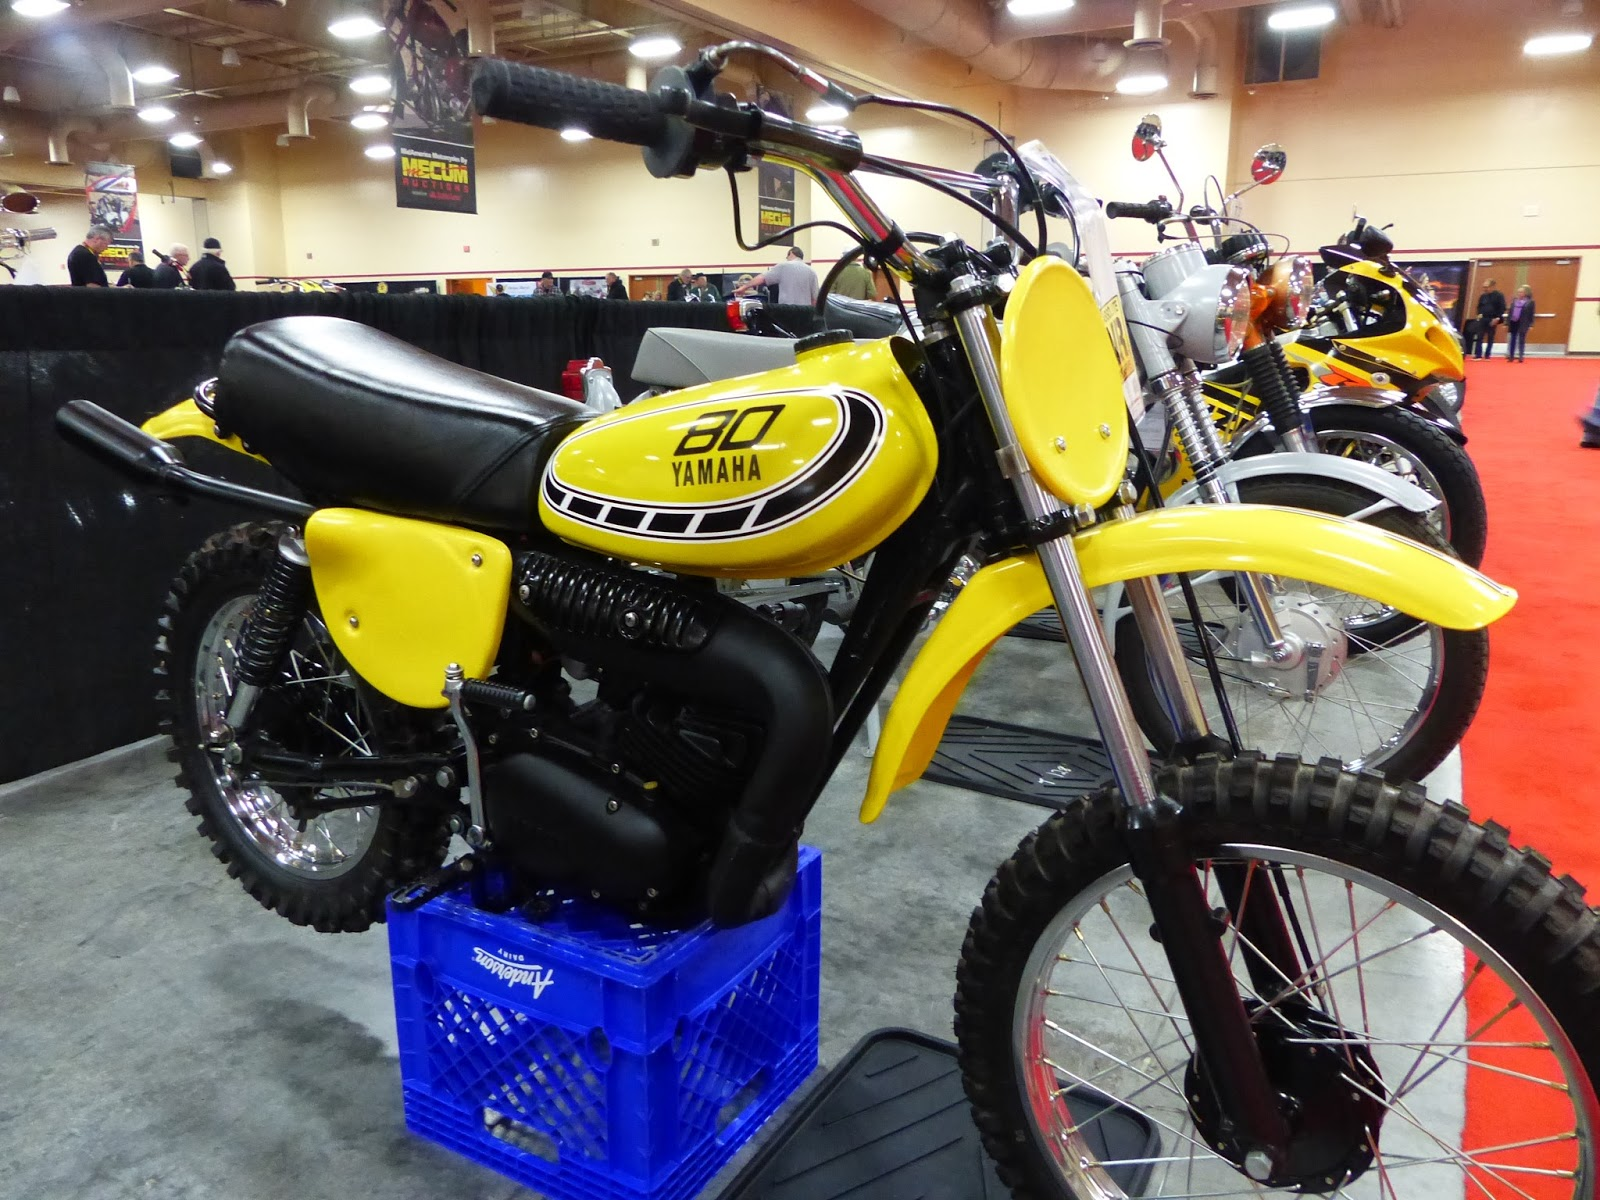 1976 yamaha yz80 sold for 3 250 at the 2016 mecum las vegas motorcycle auction